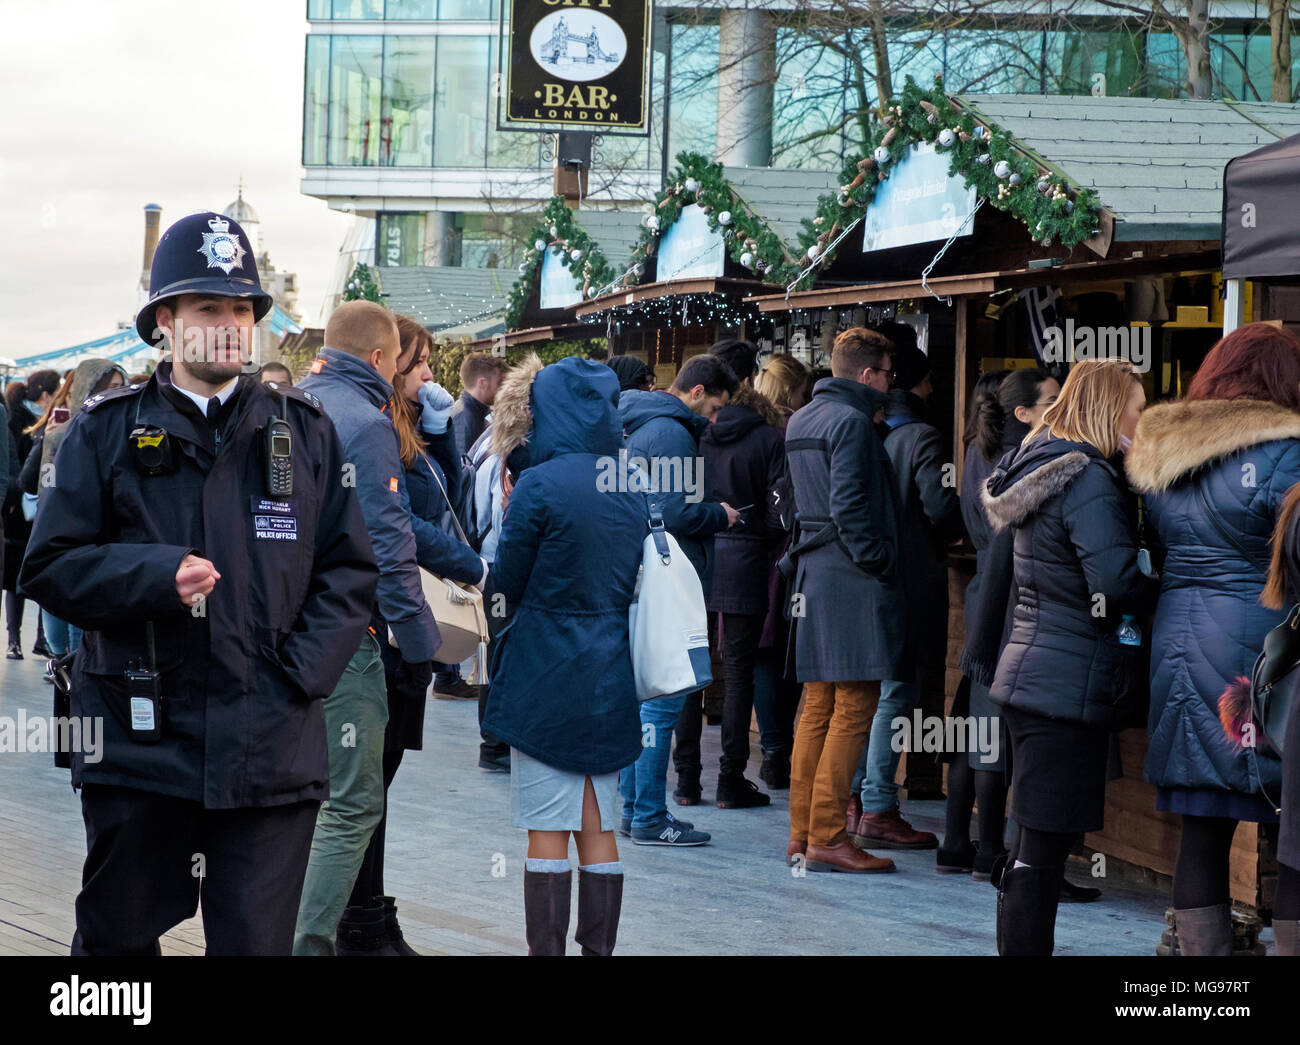 London Policeman walks by at Christmas by the River open air  Market at London Bridge City, on the south bank of the River Thames, London. - Stock Image